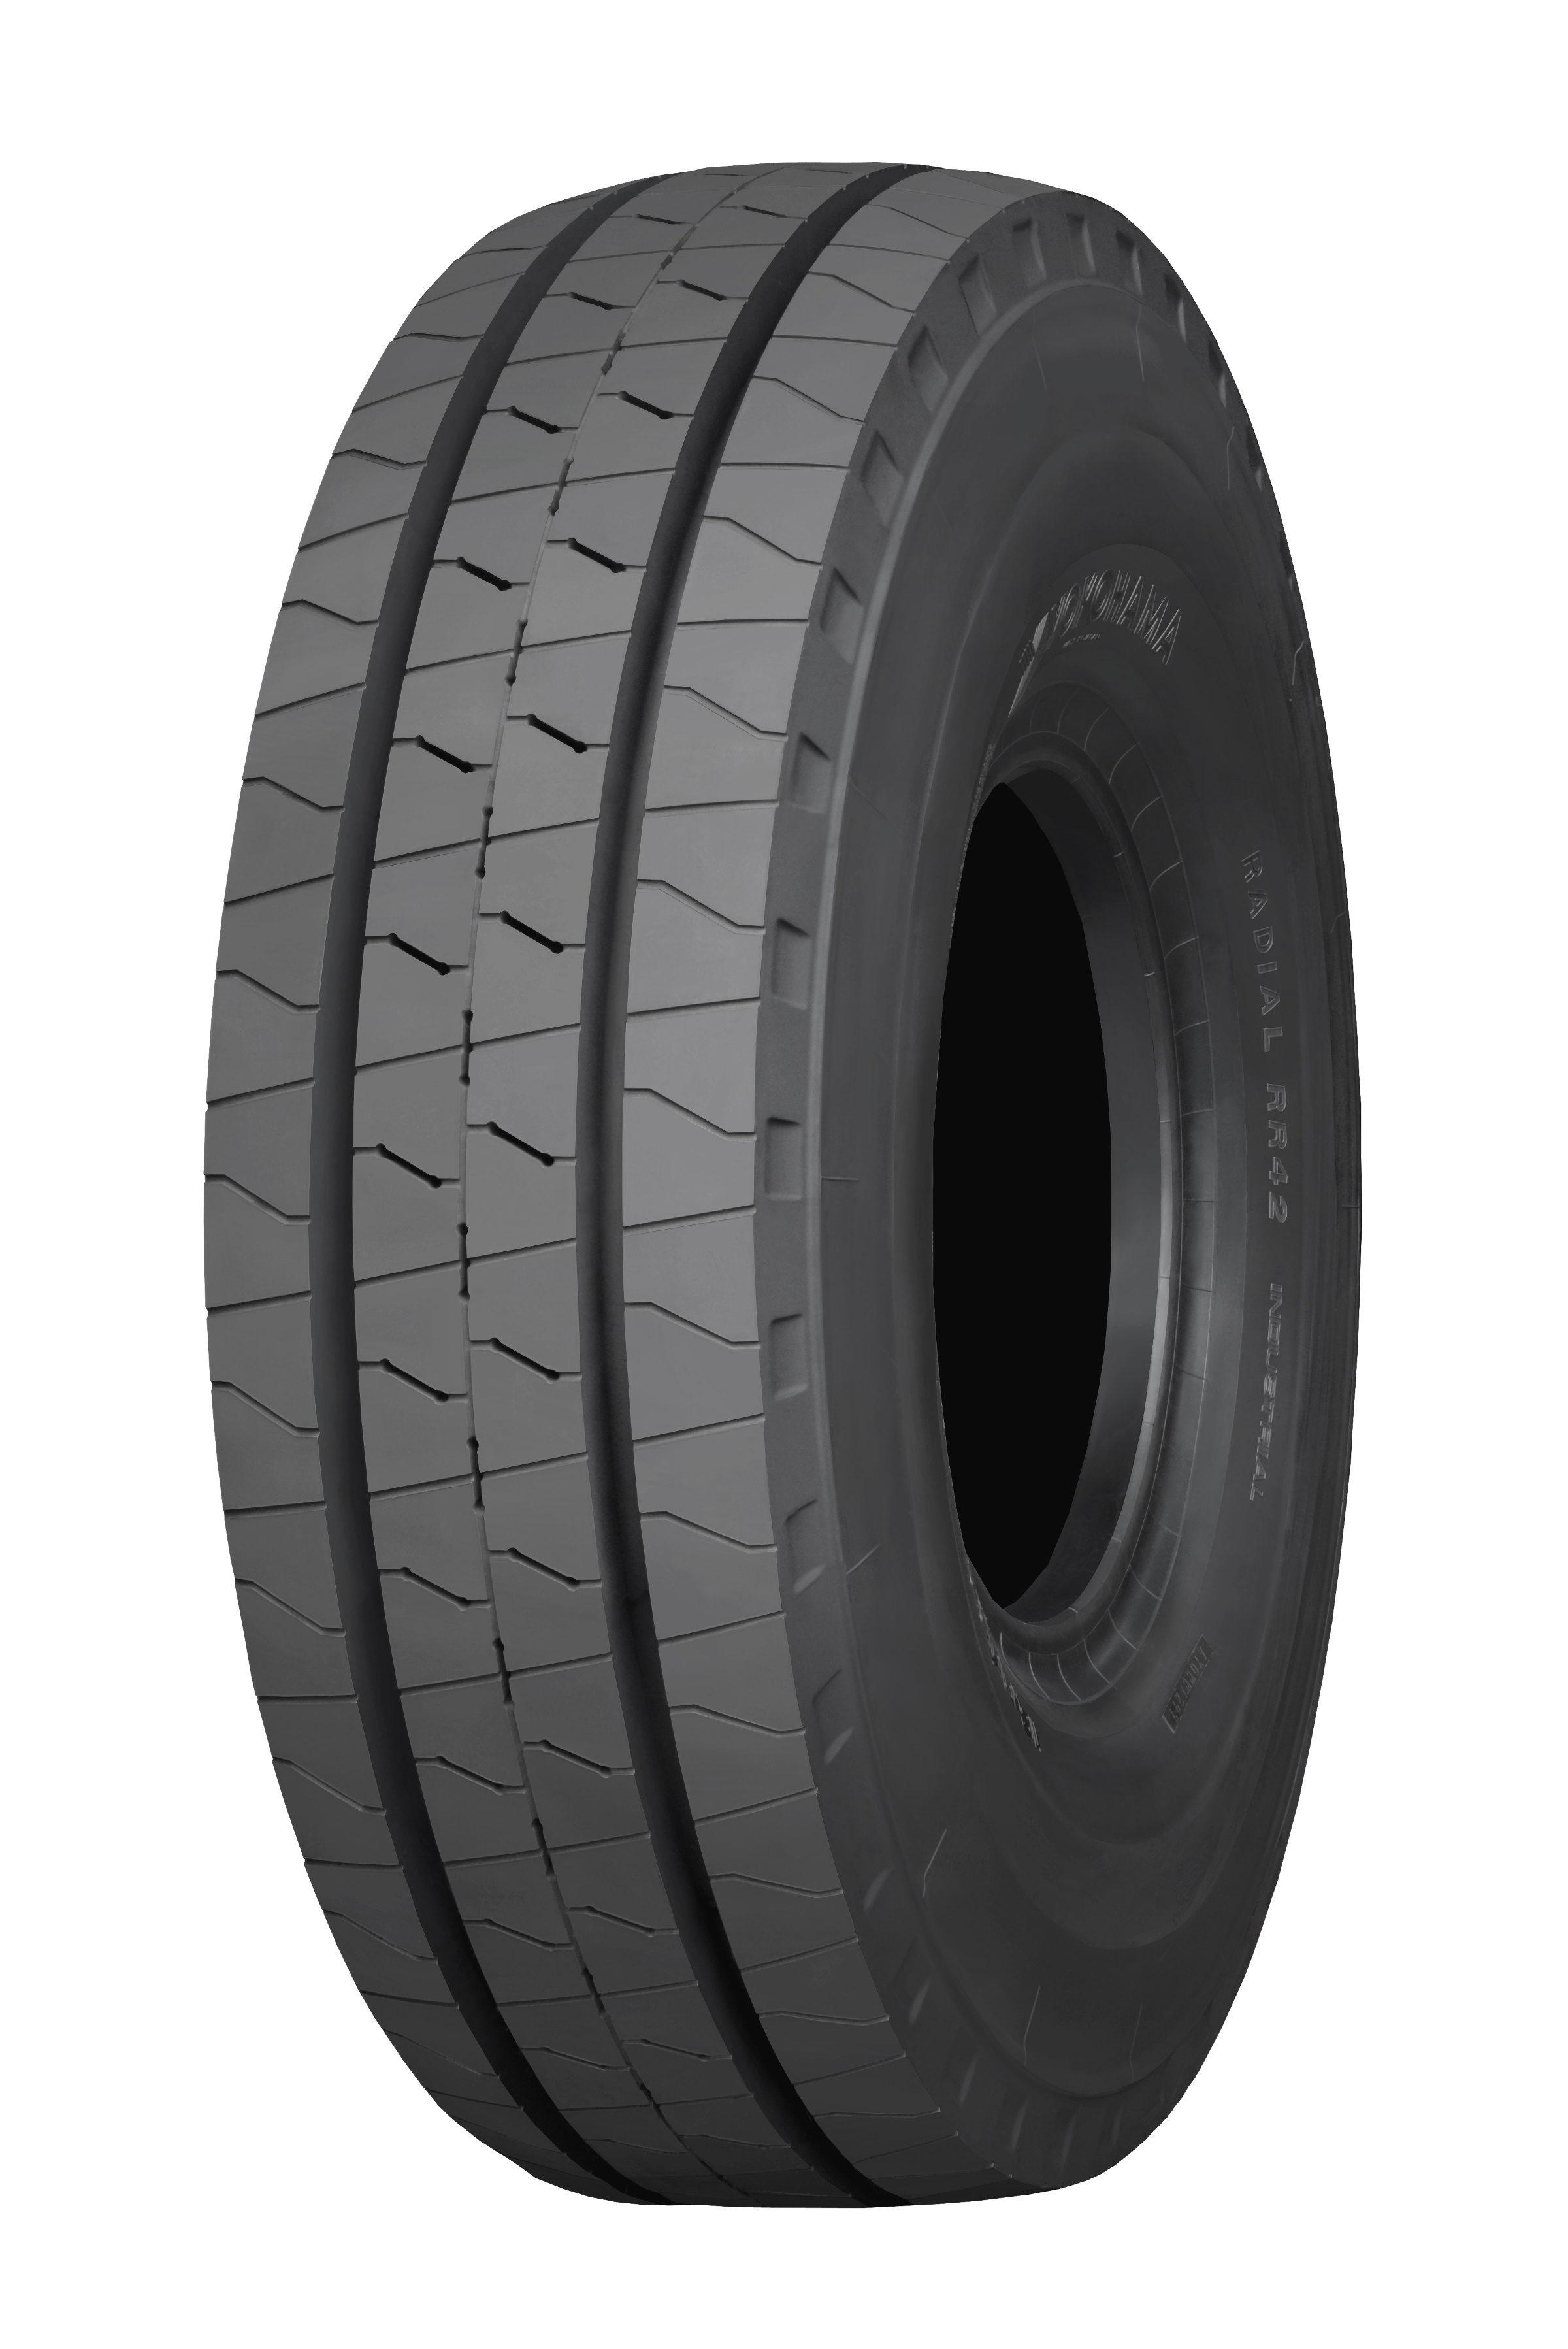 Yokohama Tire Launches New RR42™ Radial Tire for IND-4 Straddle Carriers